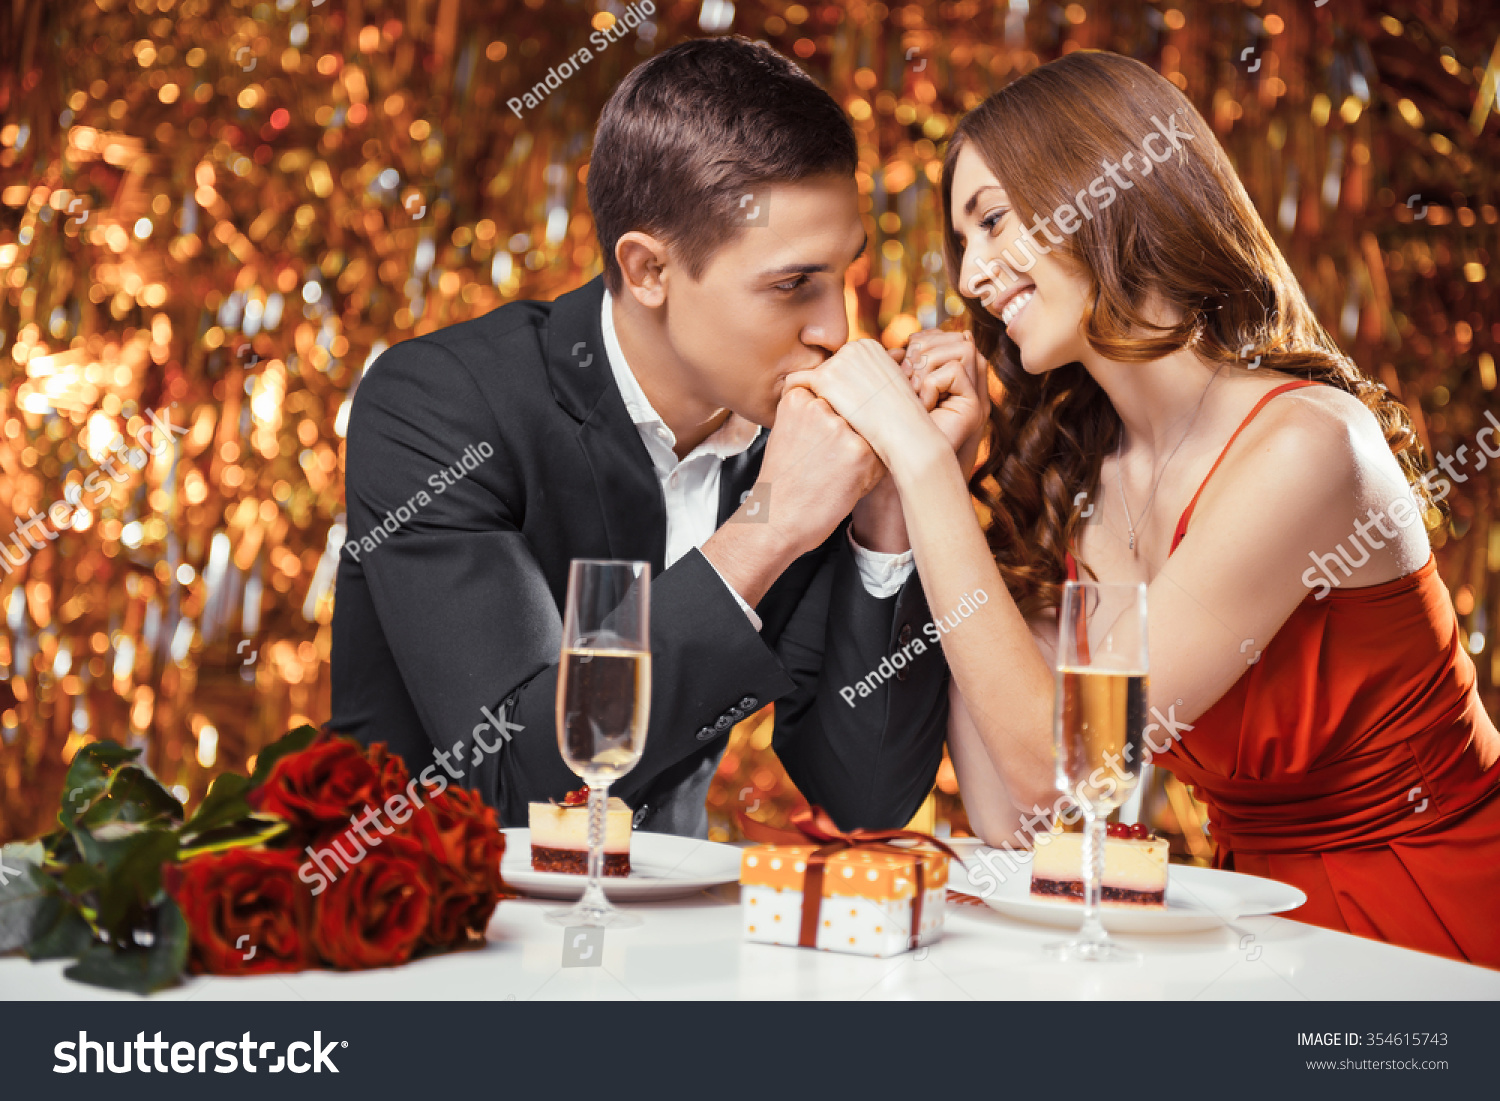 Low income online dating